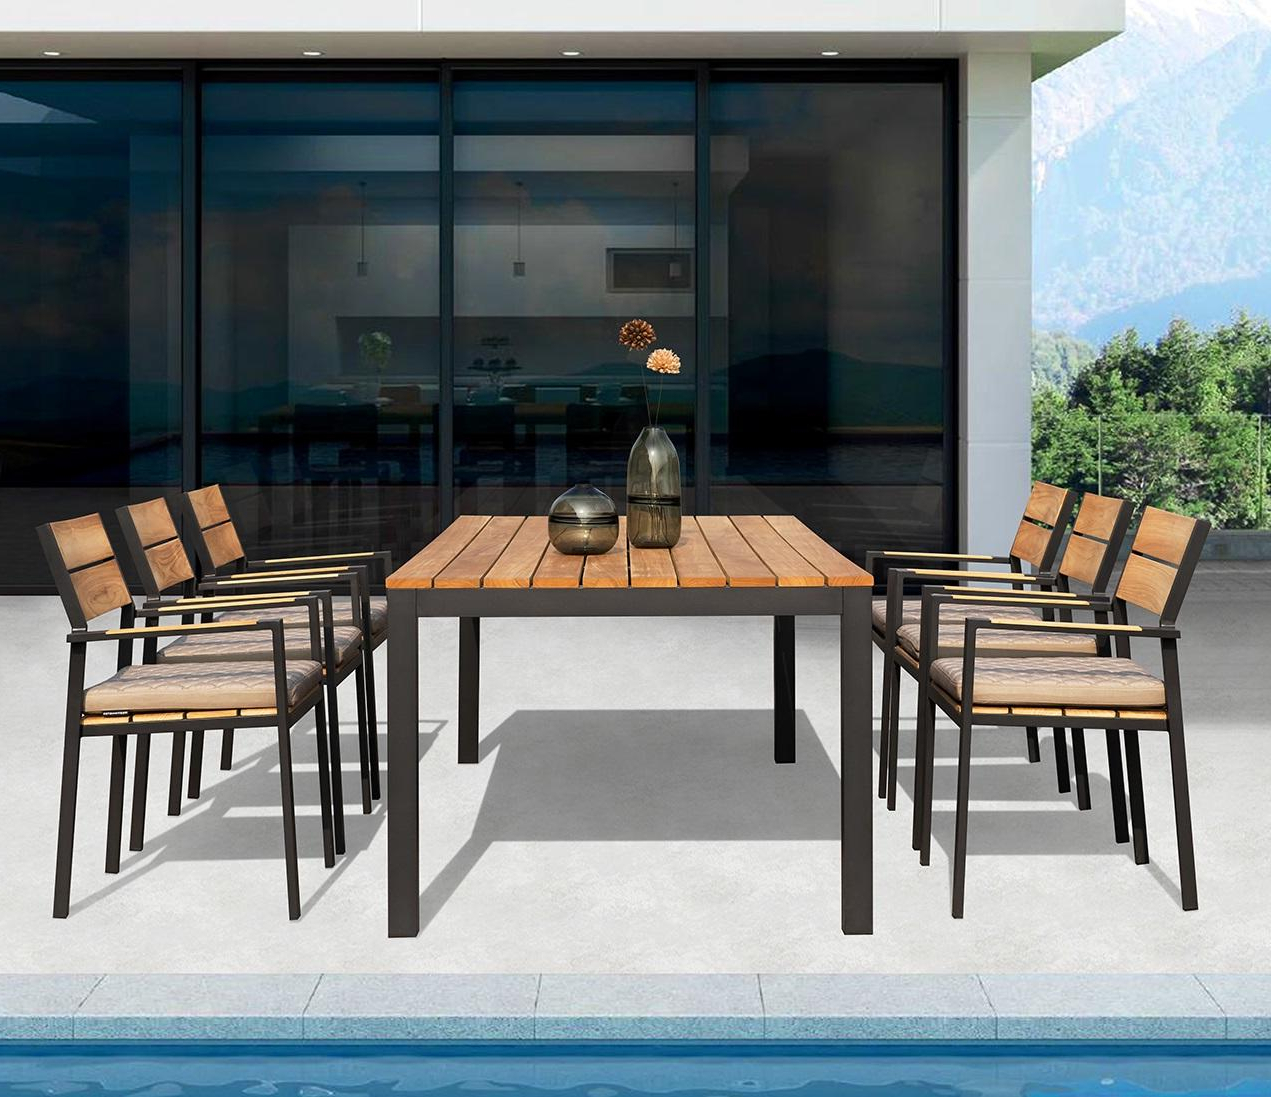 Contemporary 4 Seating Oblong Dining Tables For Favorite Modern Teak And Aluminium Garden Dining Table And Armchair Sets (Gallery 29 of 30)